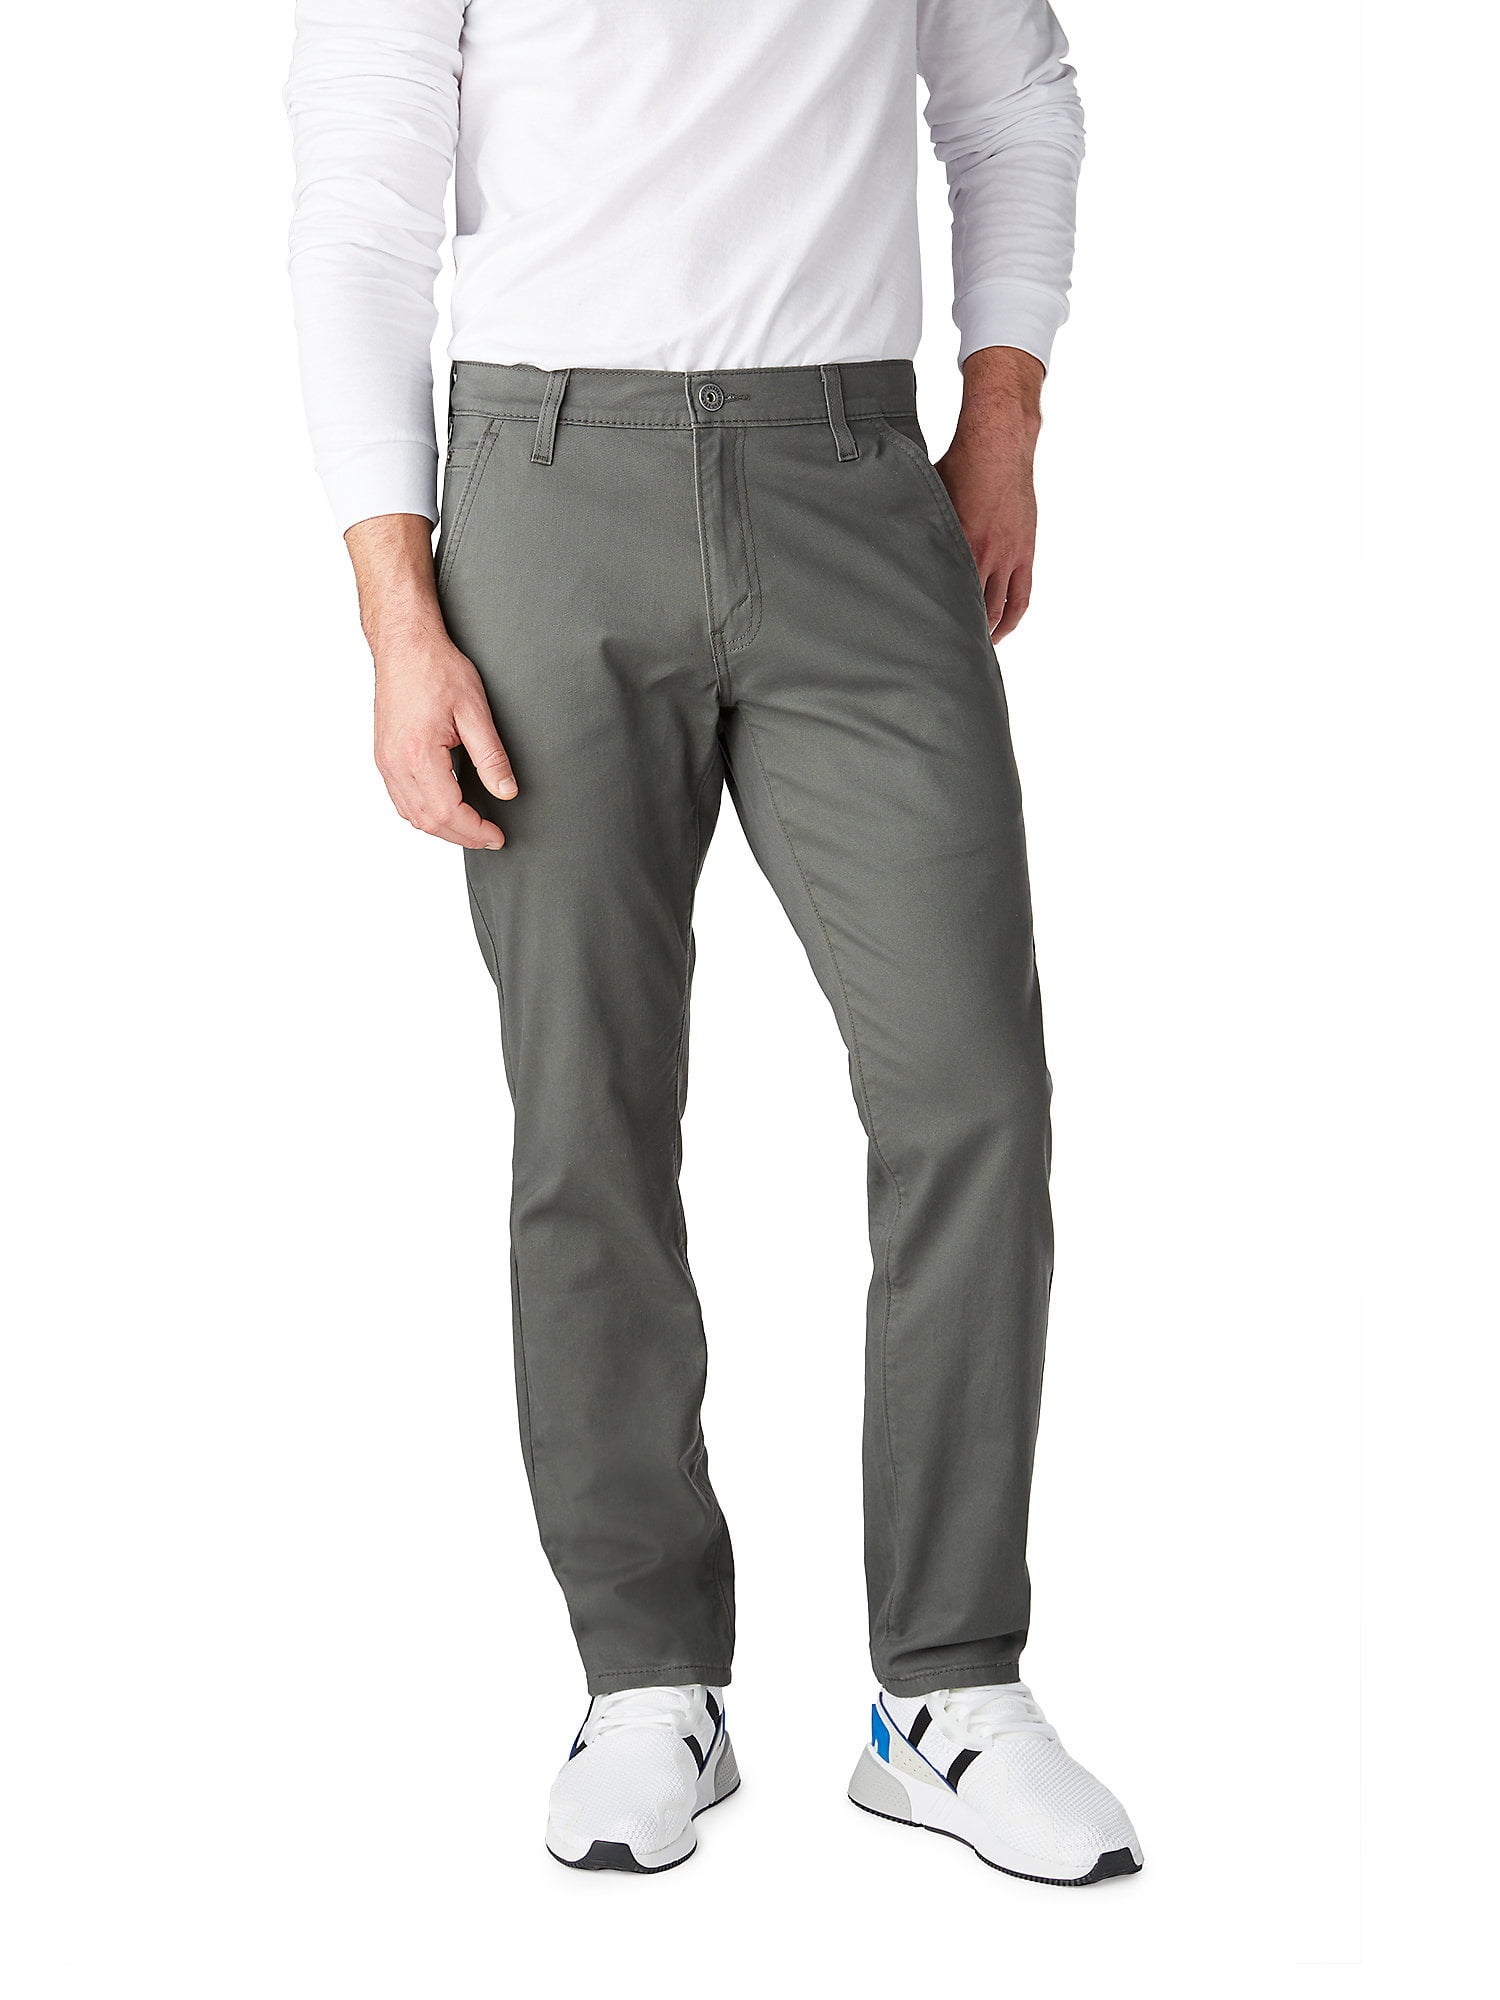 Ed Garments MenS Tall Business Casual Chino Pleated Pant-Black-38-Ul